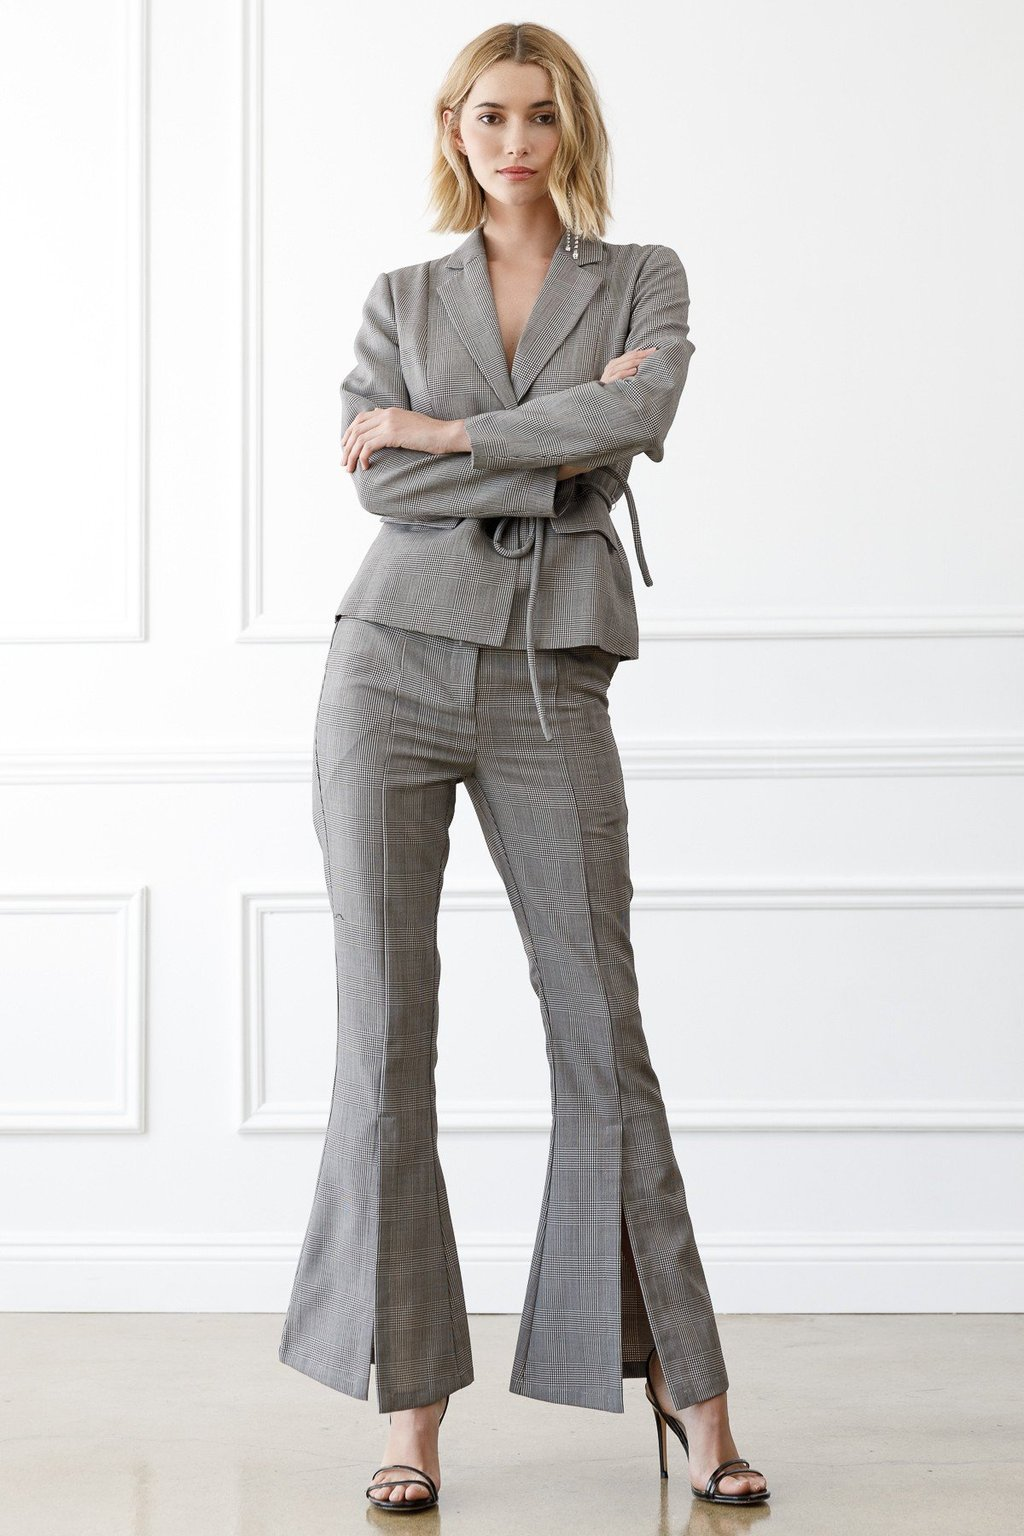 Kaylee Pants co-ord suit set for women by J.ING women's fashion clothing